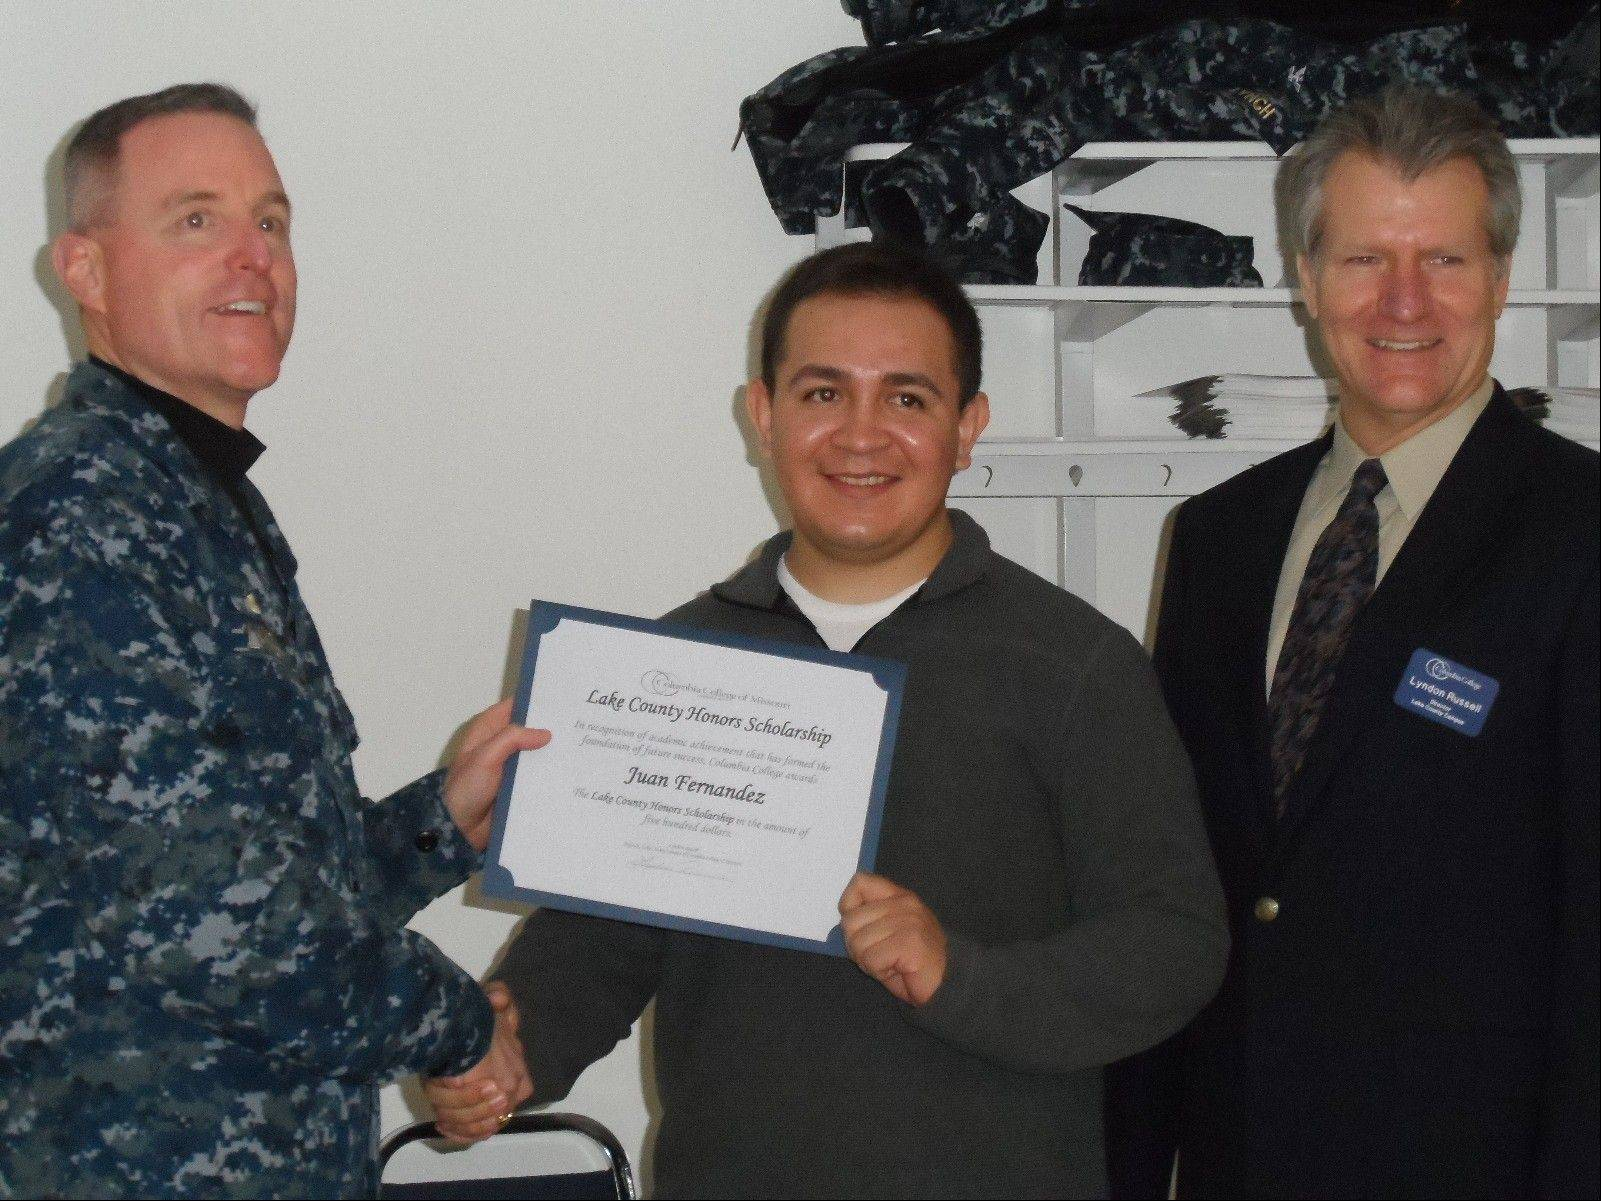 Petty Officer 2nd Class Juan Fernandez, center, receives an honors scholarship from Navy Captain Lynch, far left, at Naval Station Great Lakes during a classroom dedication by Columbia College, Columbia, Mo. Campus Director Lyndon Russell is at right.